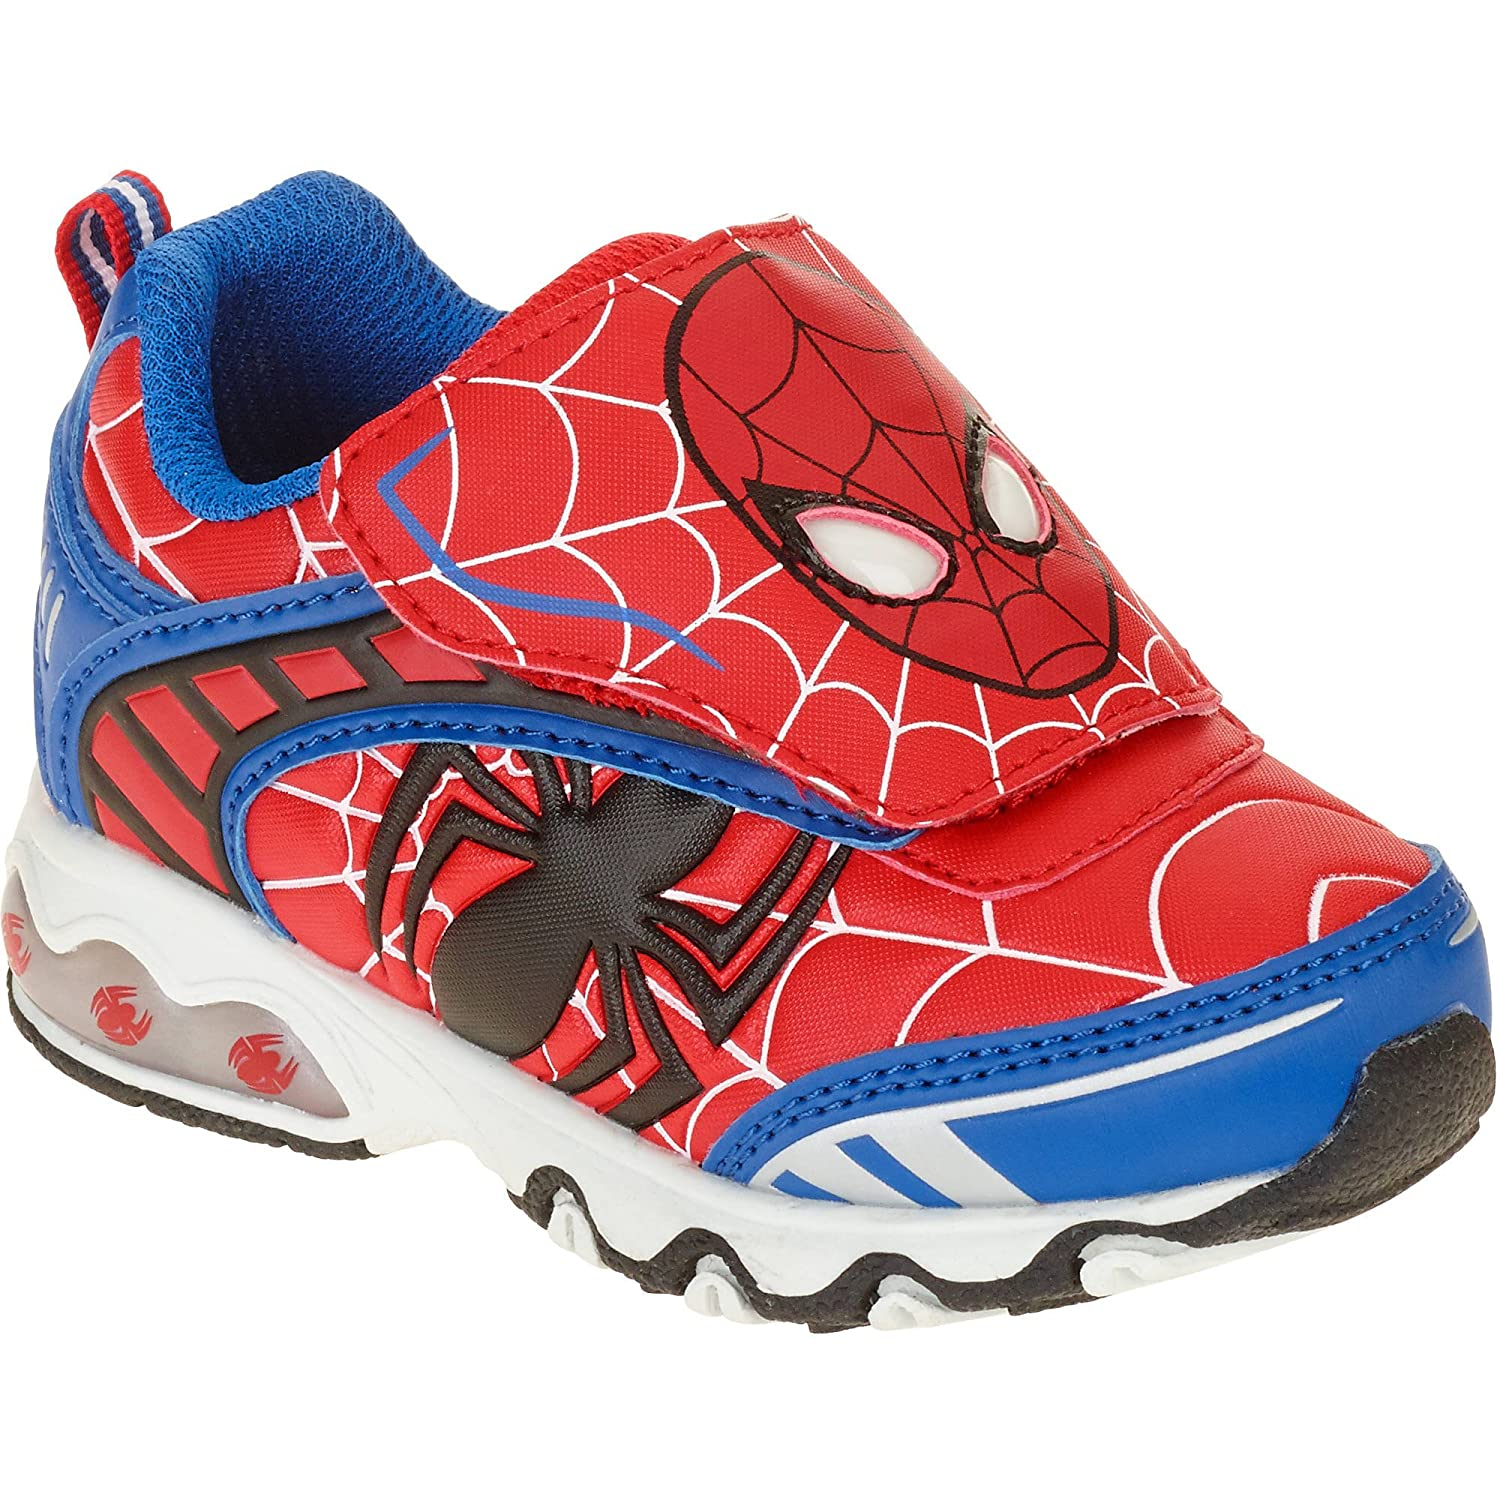 The Ultimate Spider-Man Light-up Shoes Sneakers Toddler's & Boys Sizes